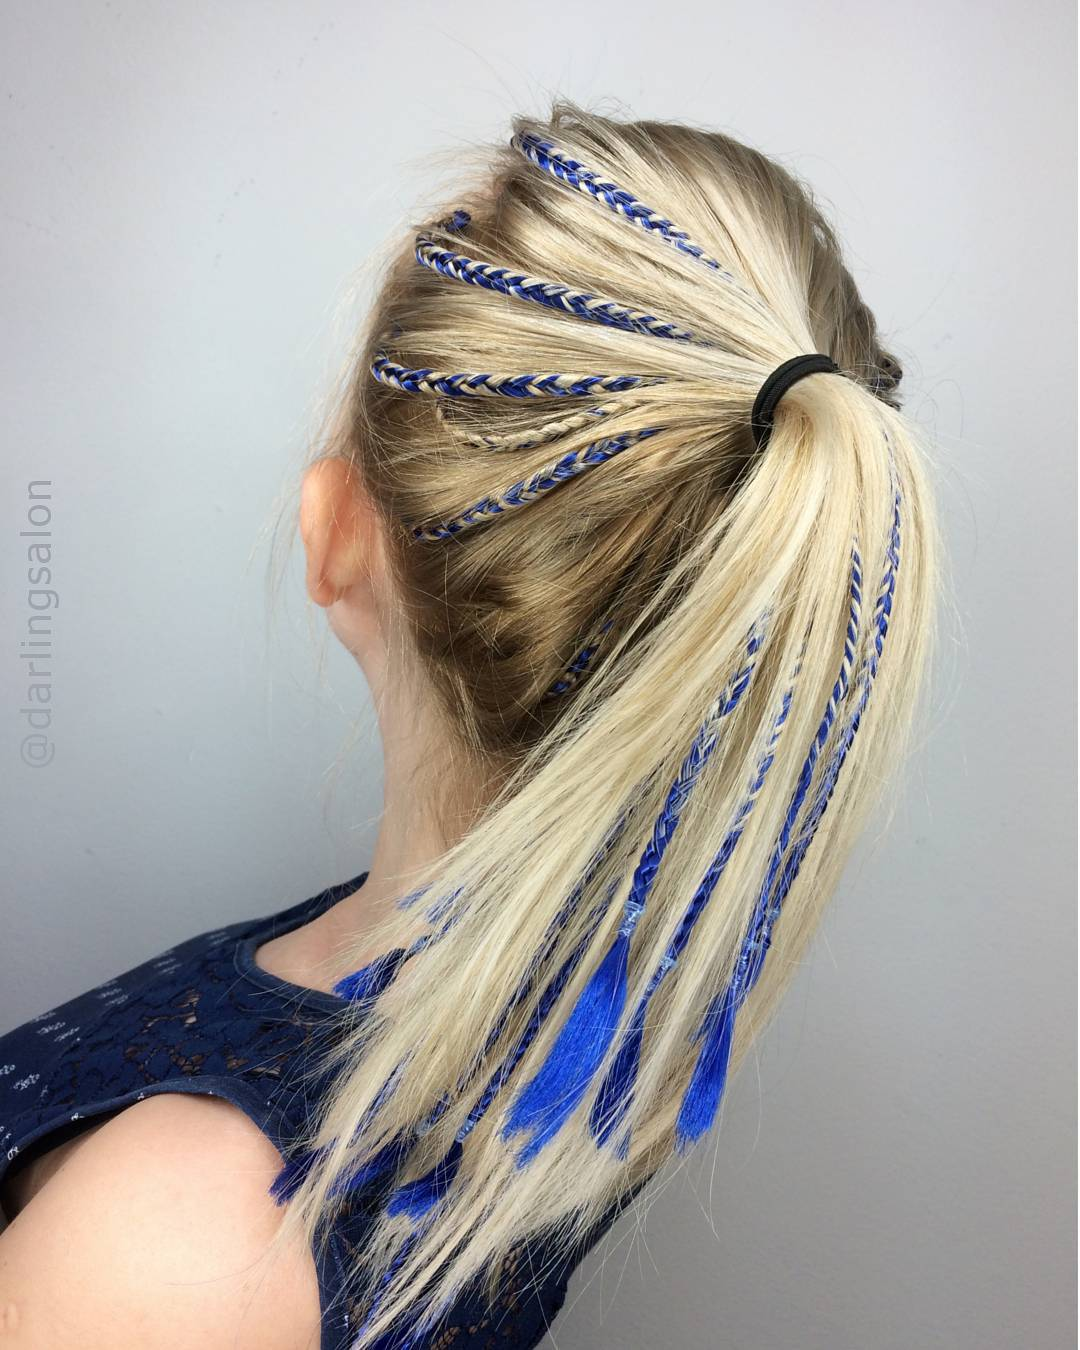 Trendy blue style Ponytail hairstyle